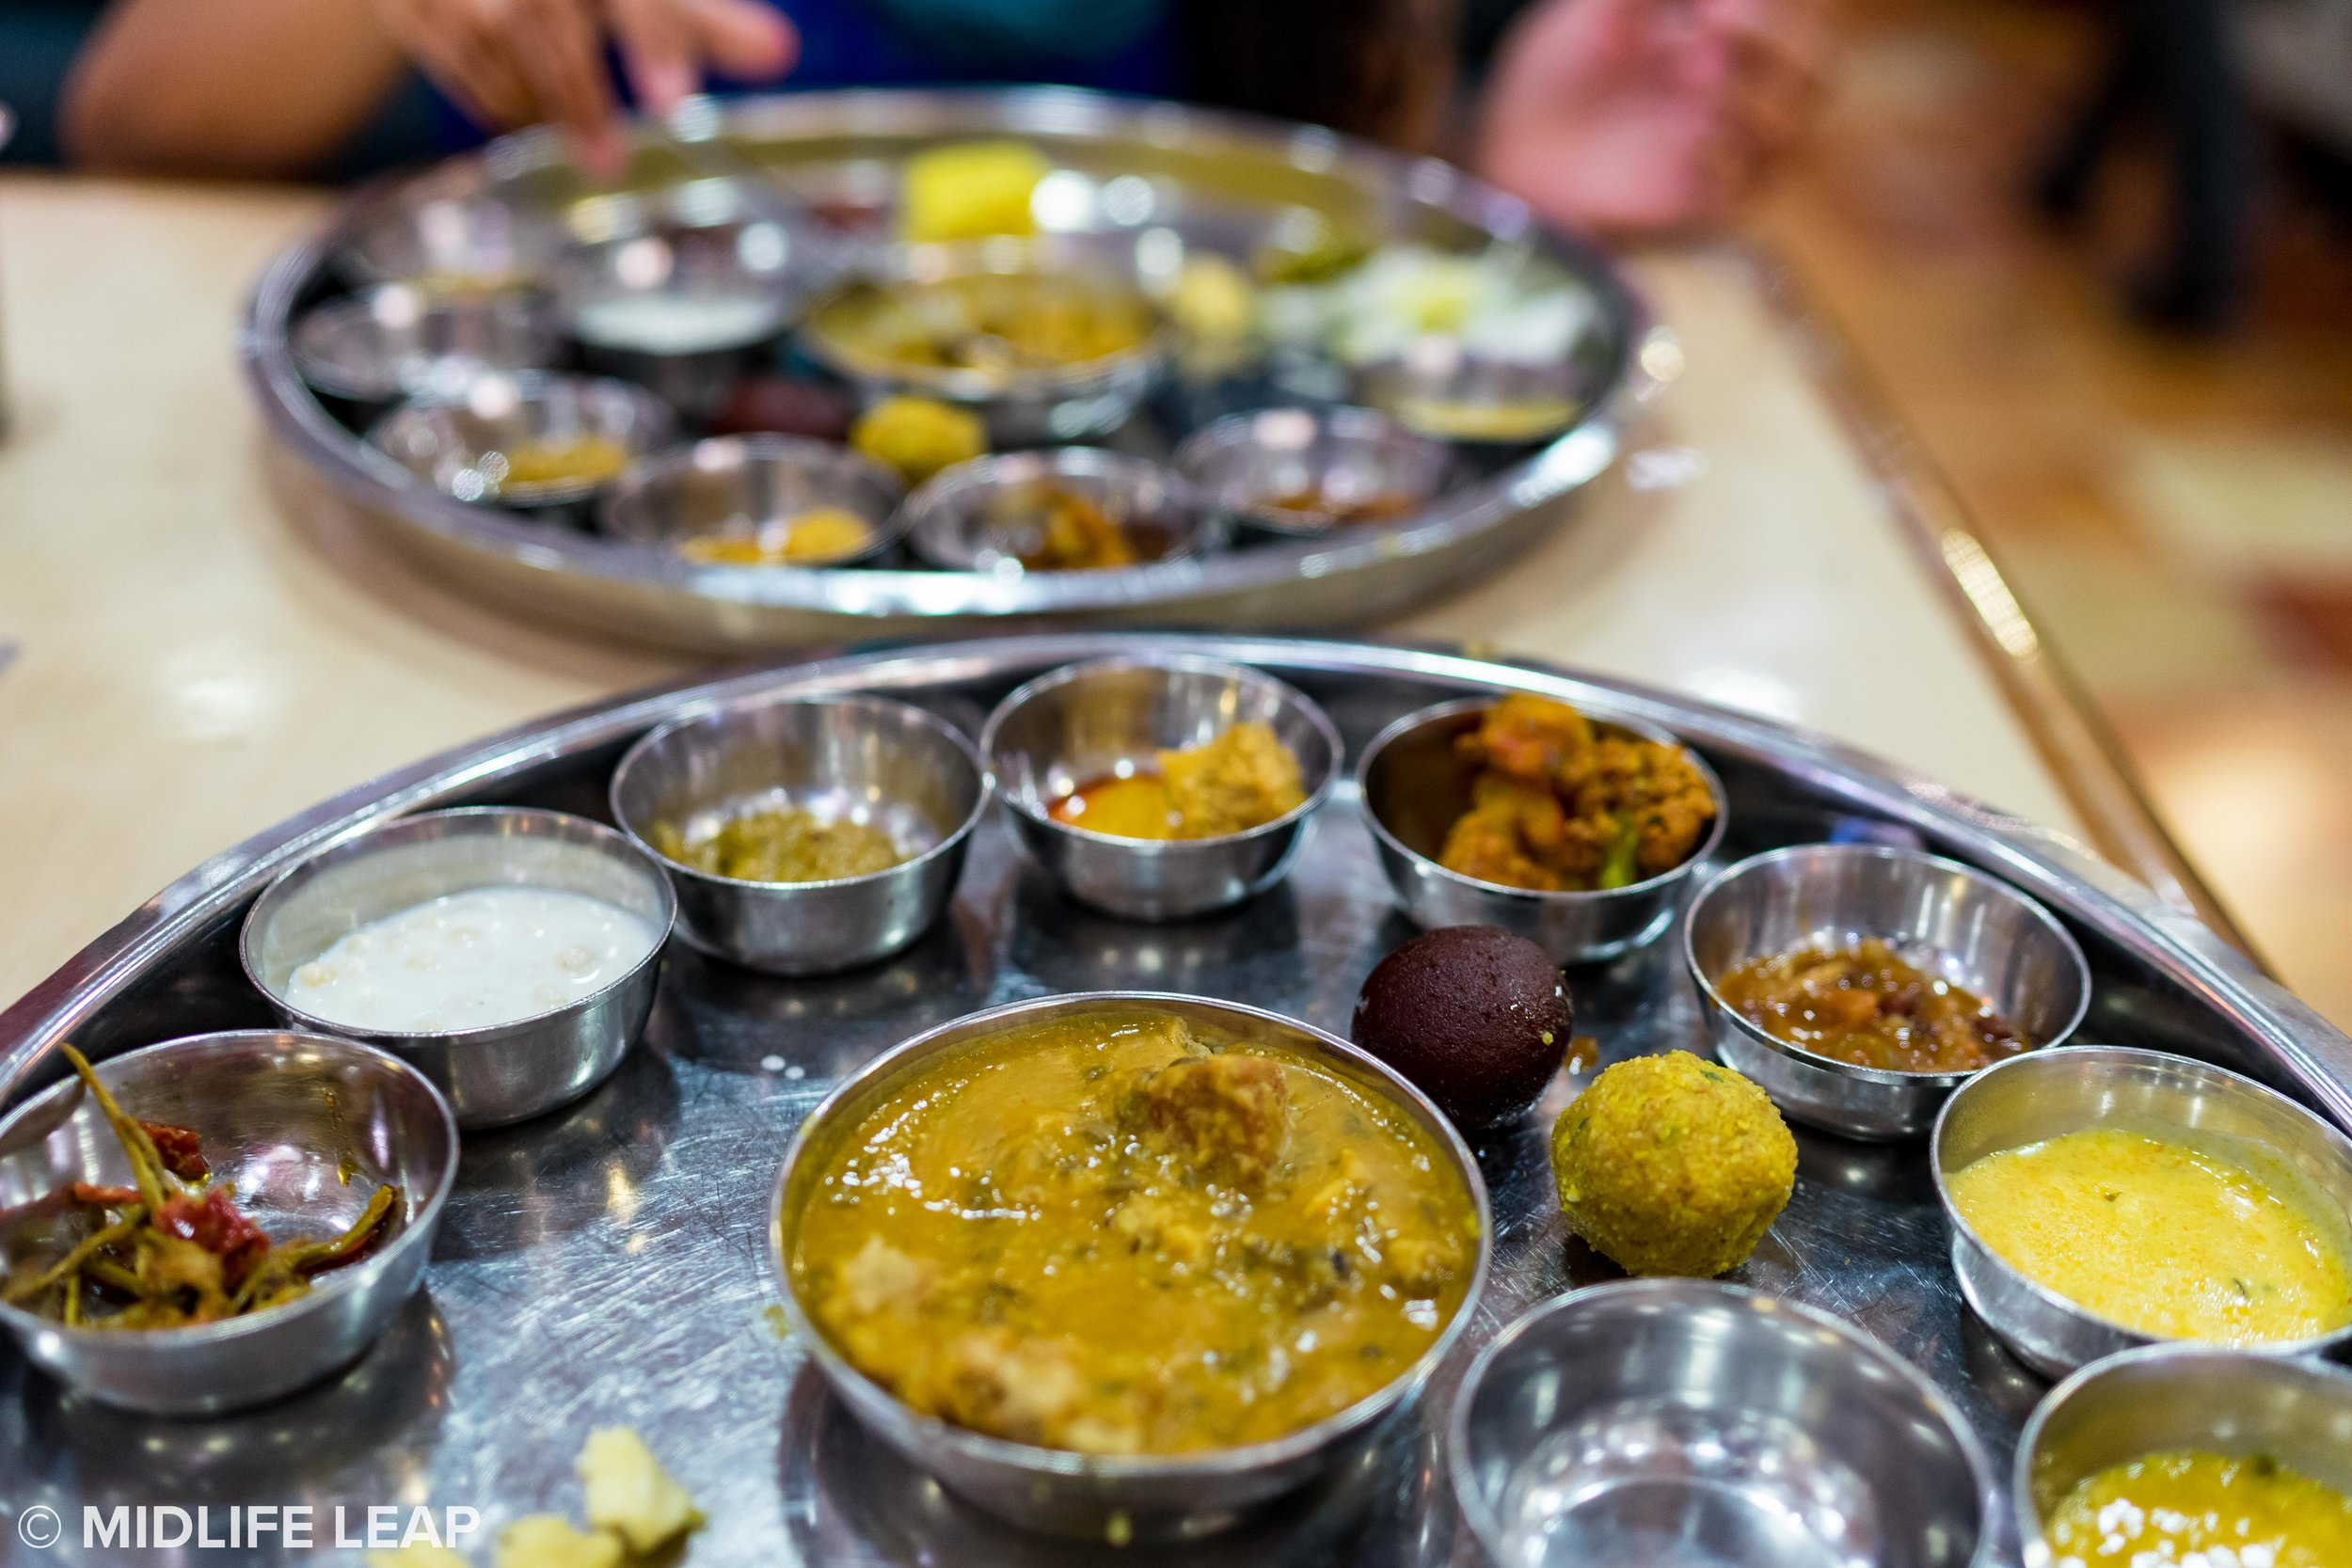 Get that thali special!